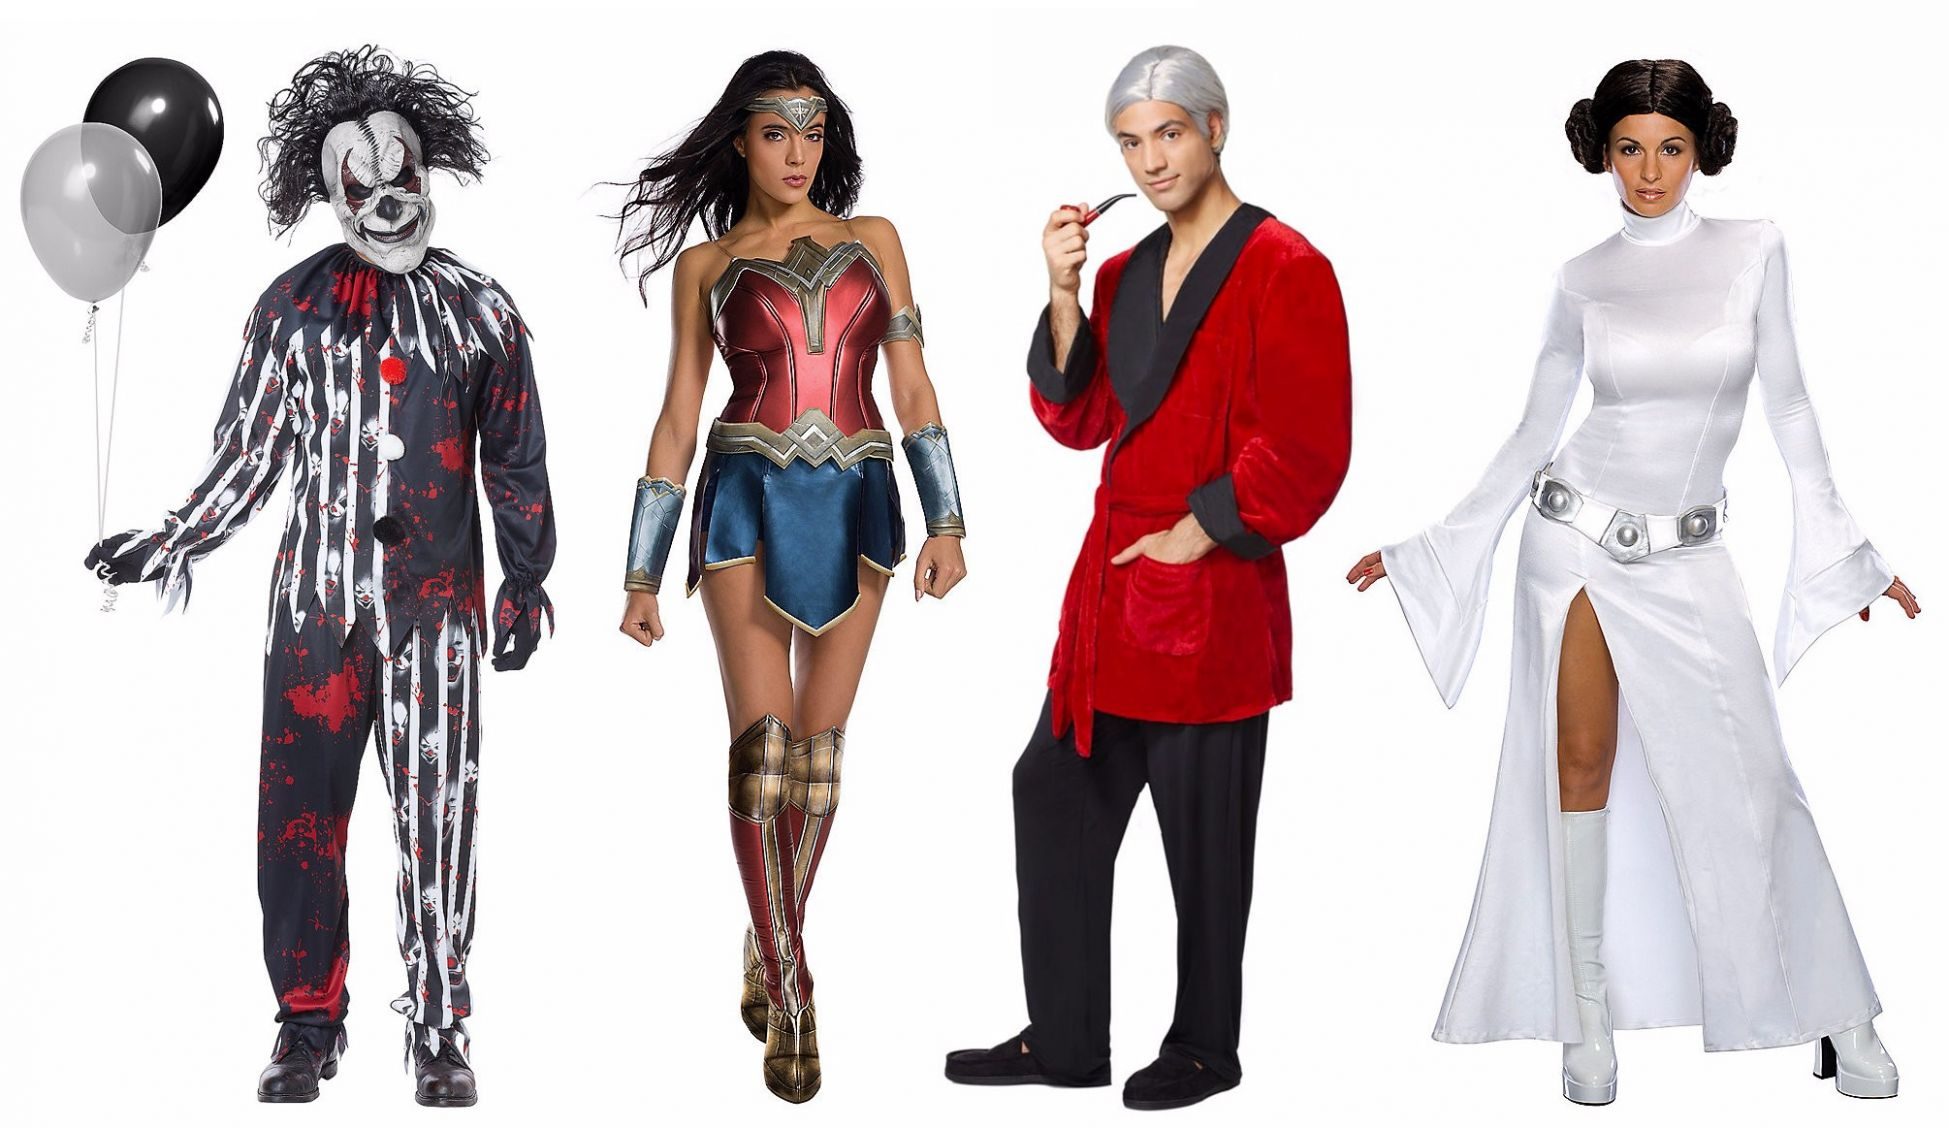 Halloween costume ideas 11: Most popular, trendy memes and more ...